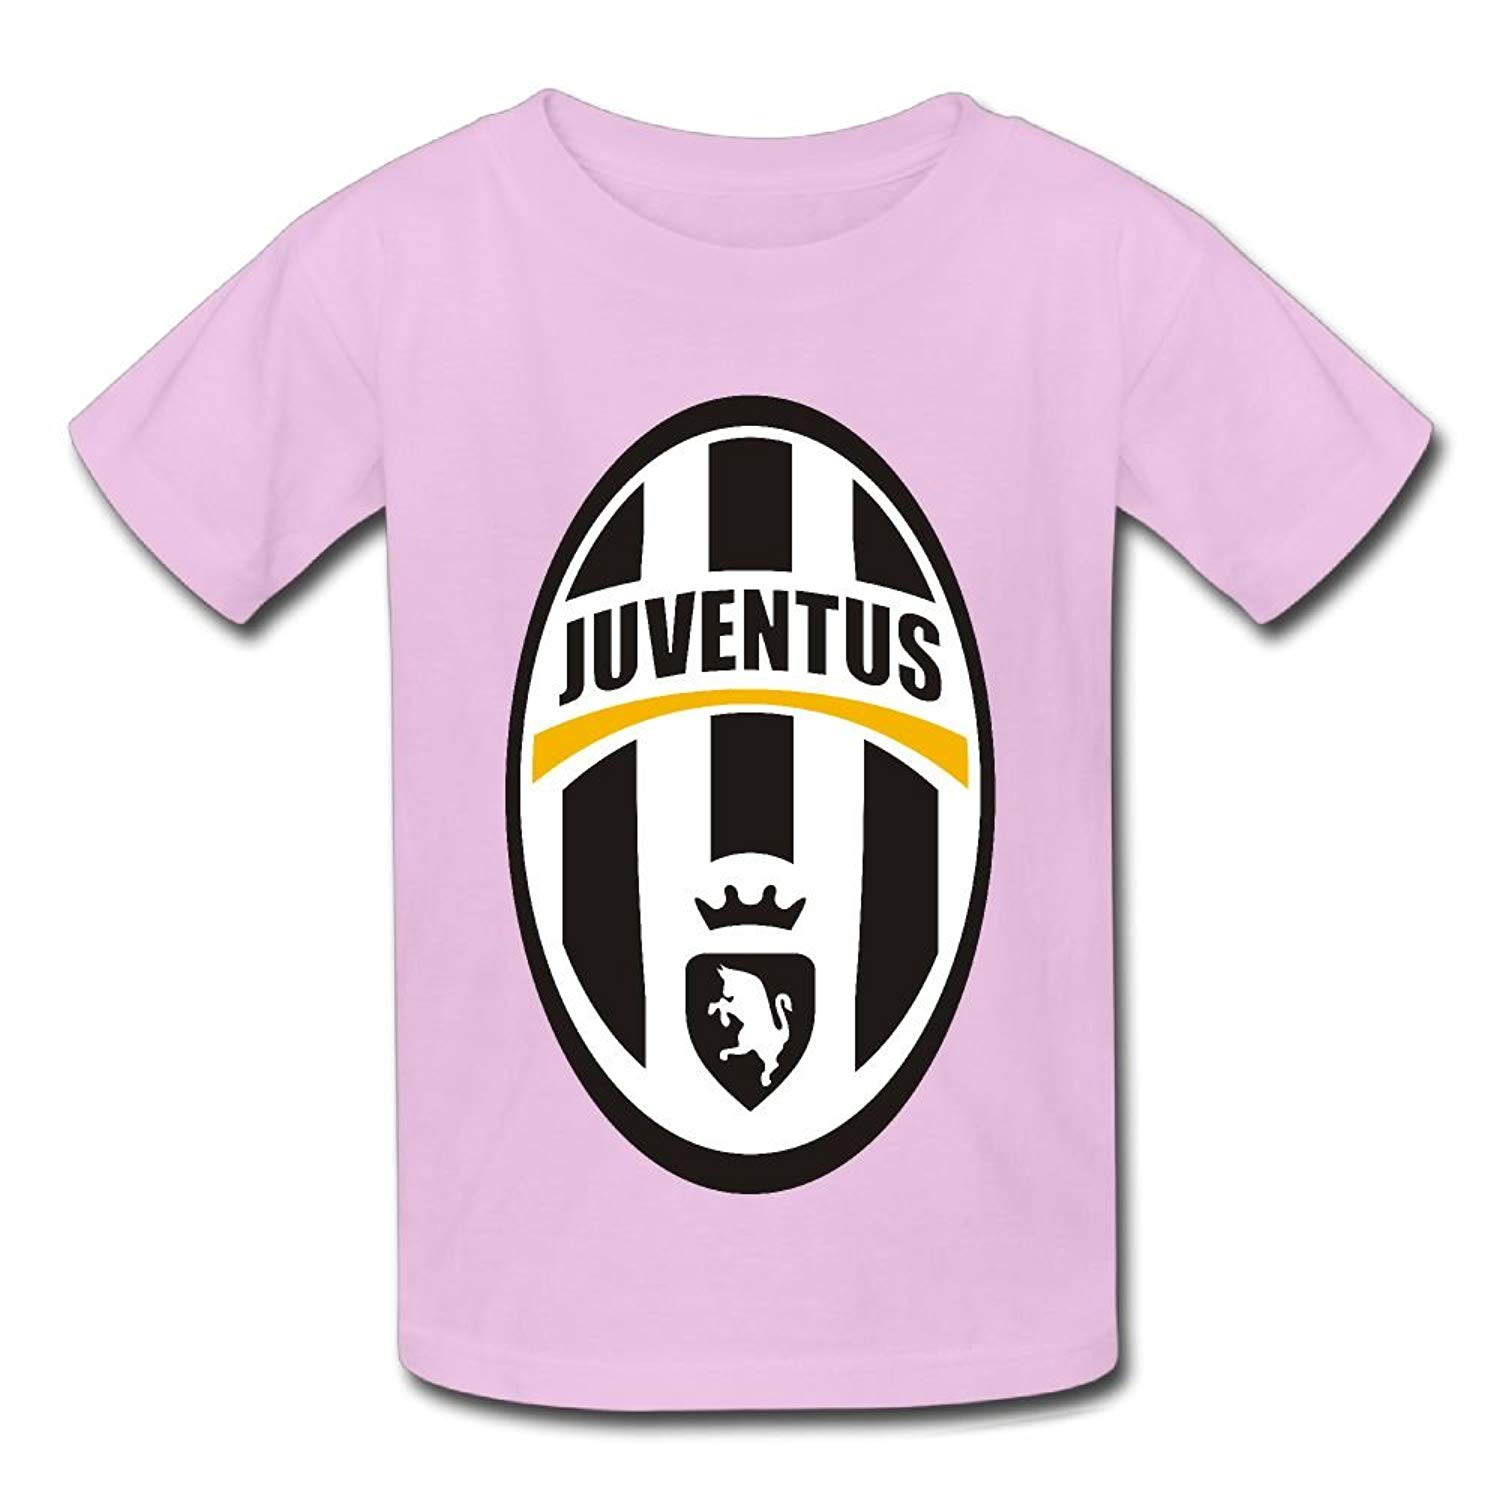 Cheap Juventus Girls, find Juventus Girls deals on line at Alibaba.com bf36873a49e